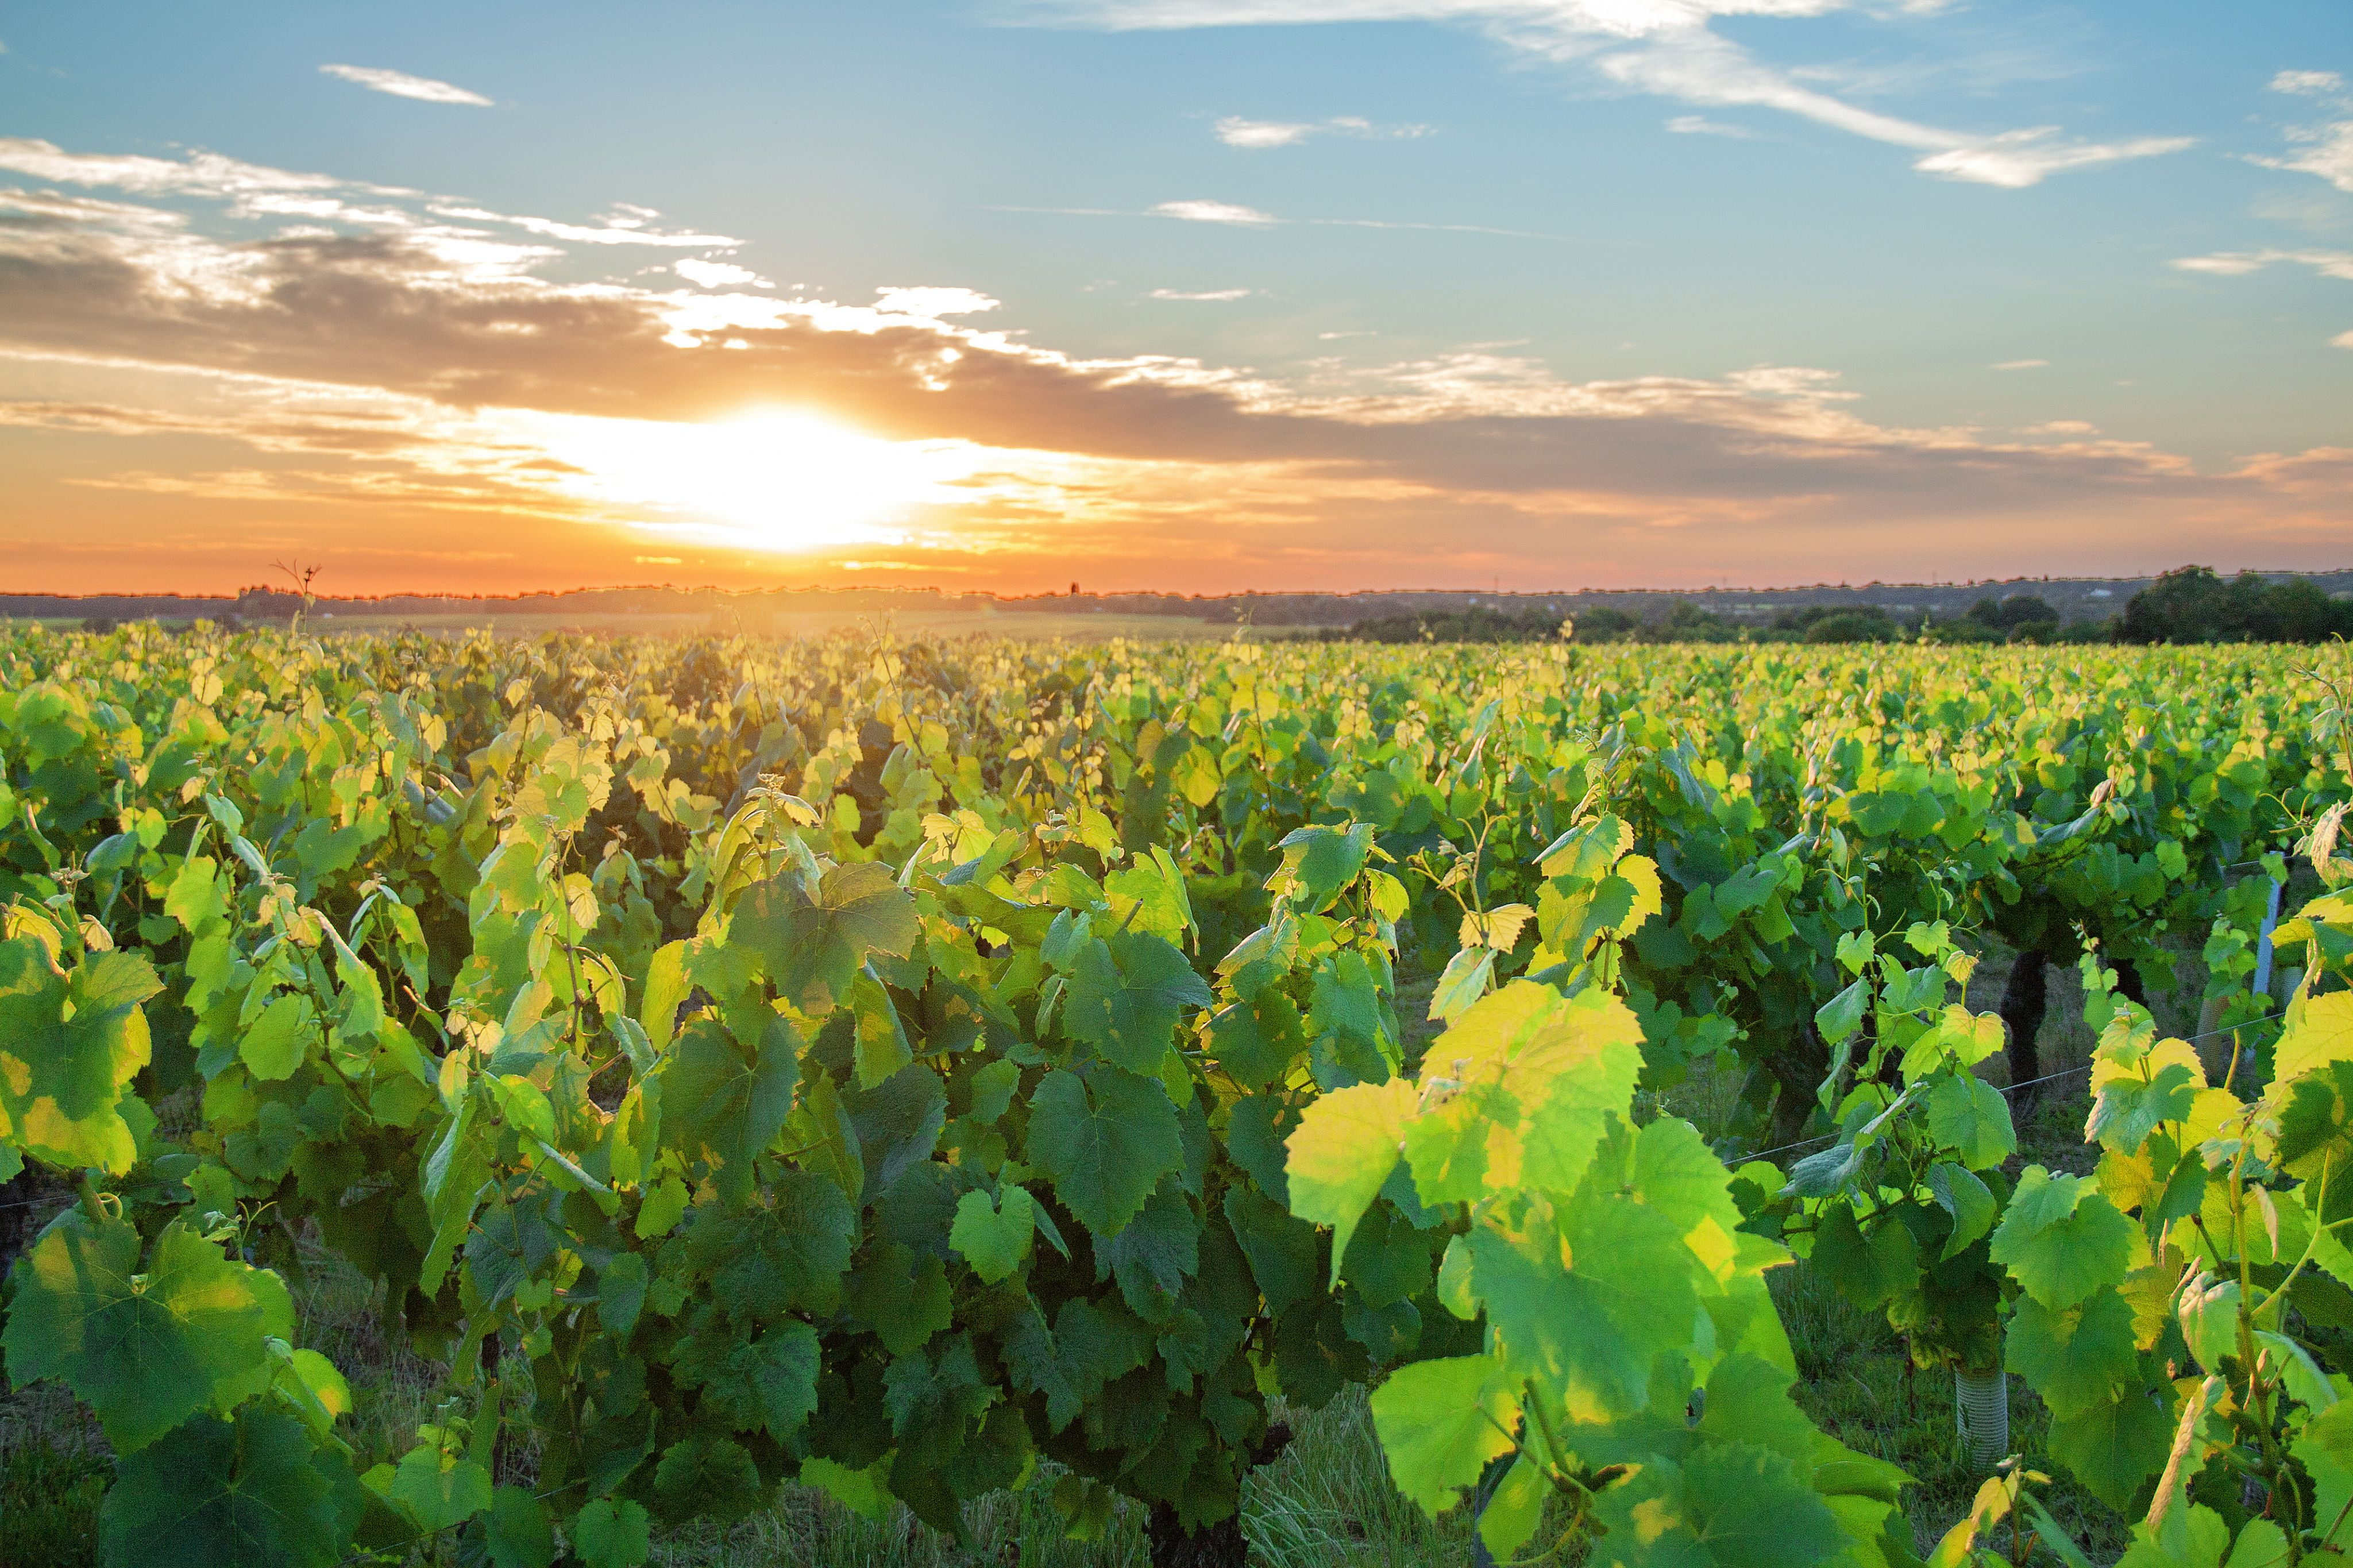 Sunset-over-Muscadet-vineyards-.jpg